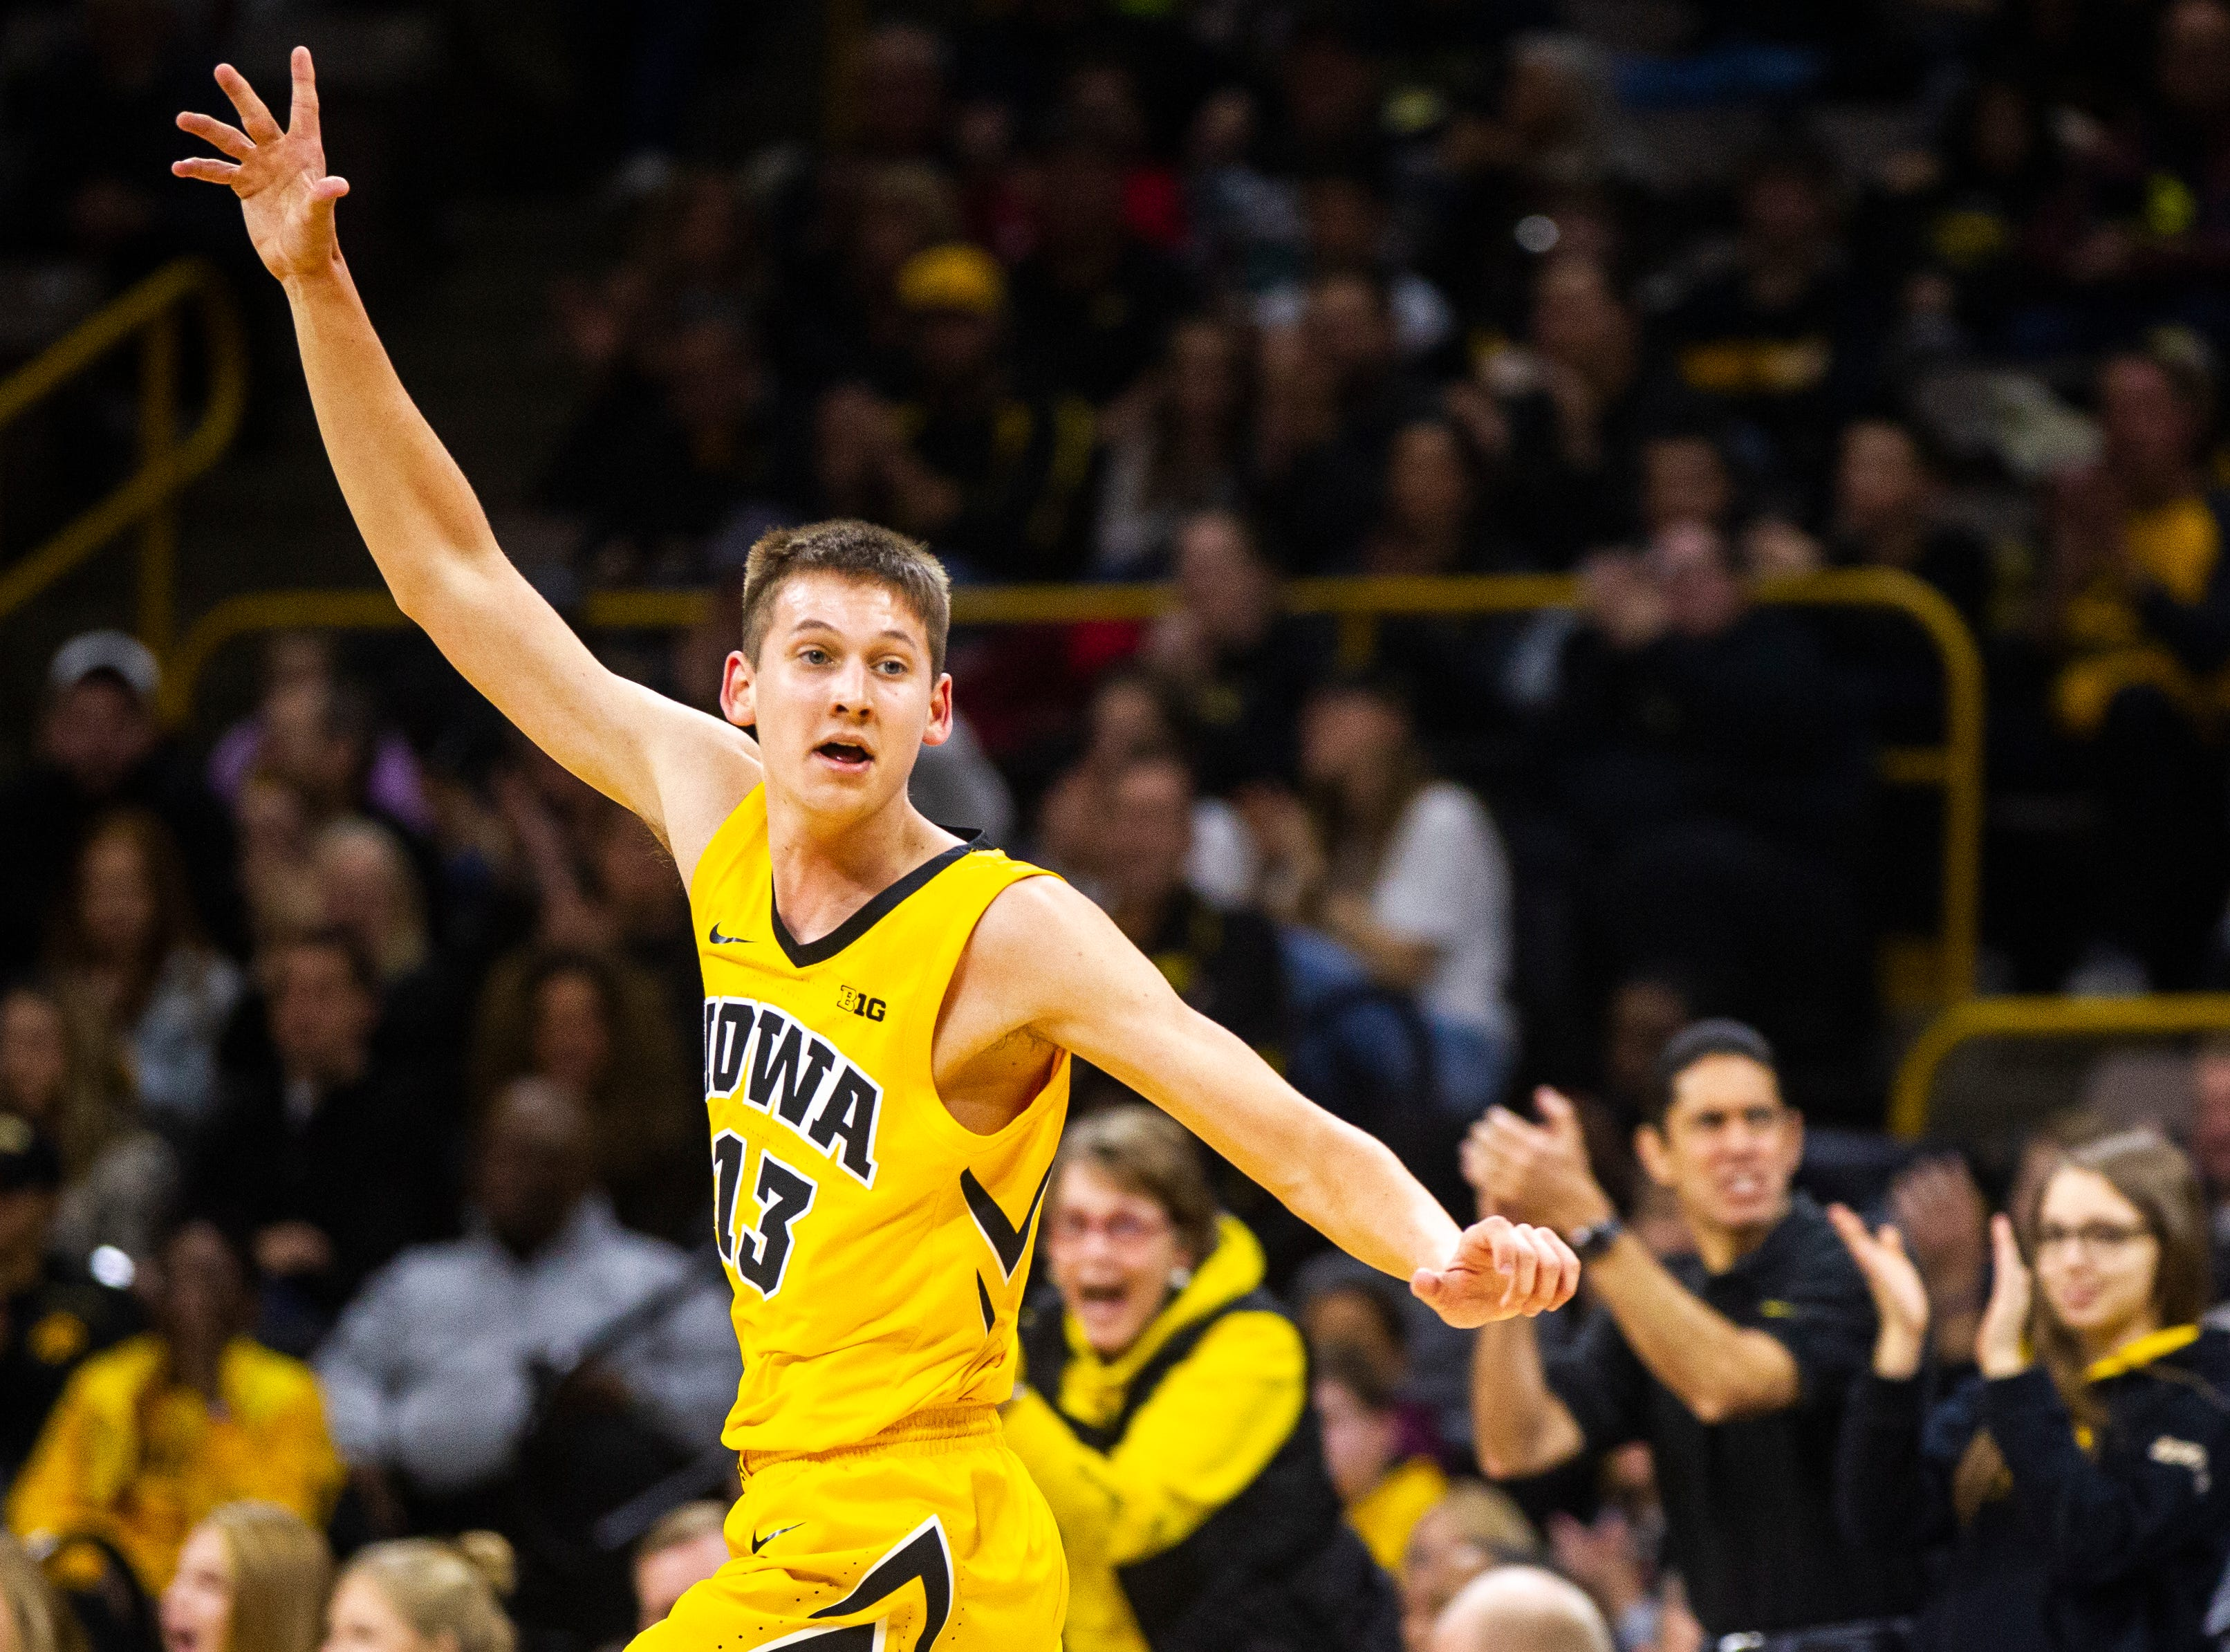 Iowa guard Austin Ash (13) celebrates after making a 3-point basket during a NCAA men's basketball game on Saturday, Dec. 22, 2018, at Carver-Hawkeye Arena in Iowa City.